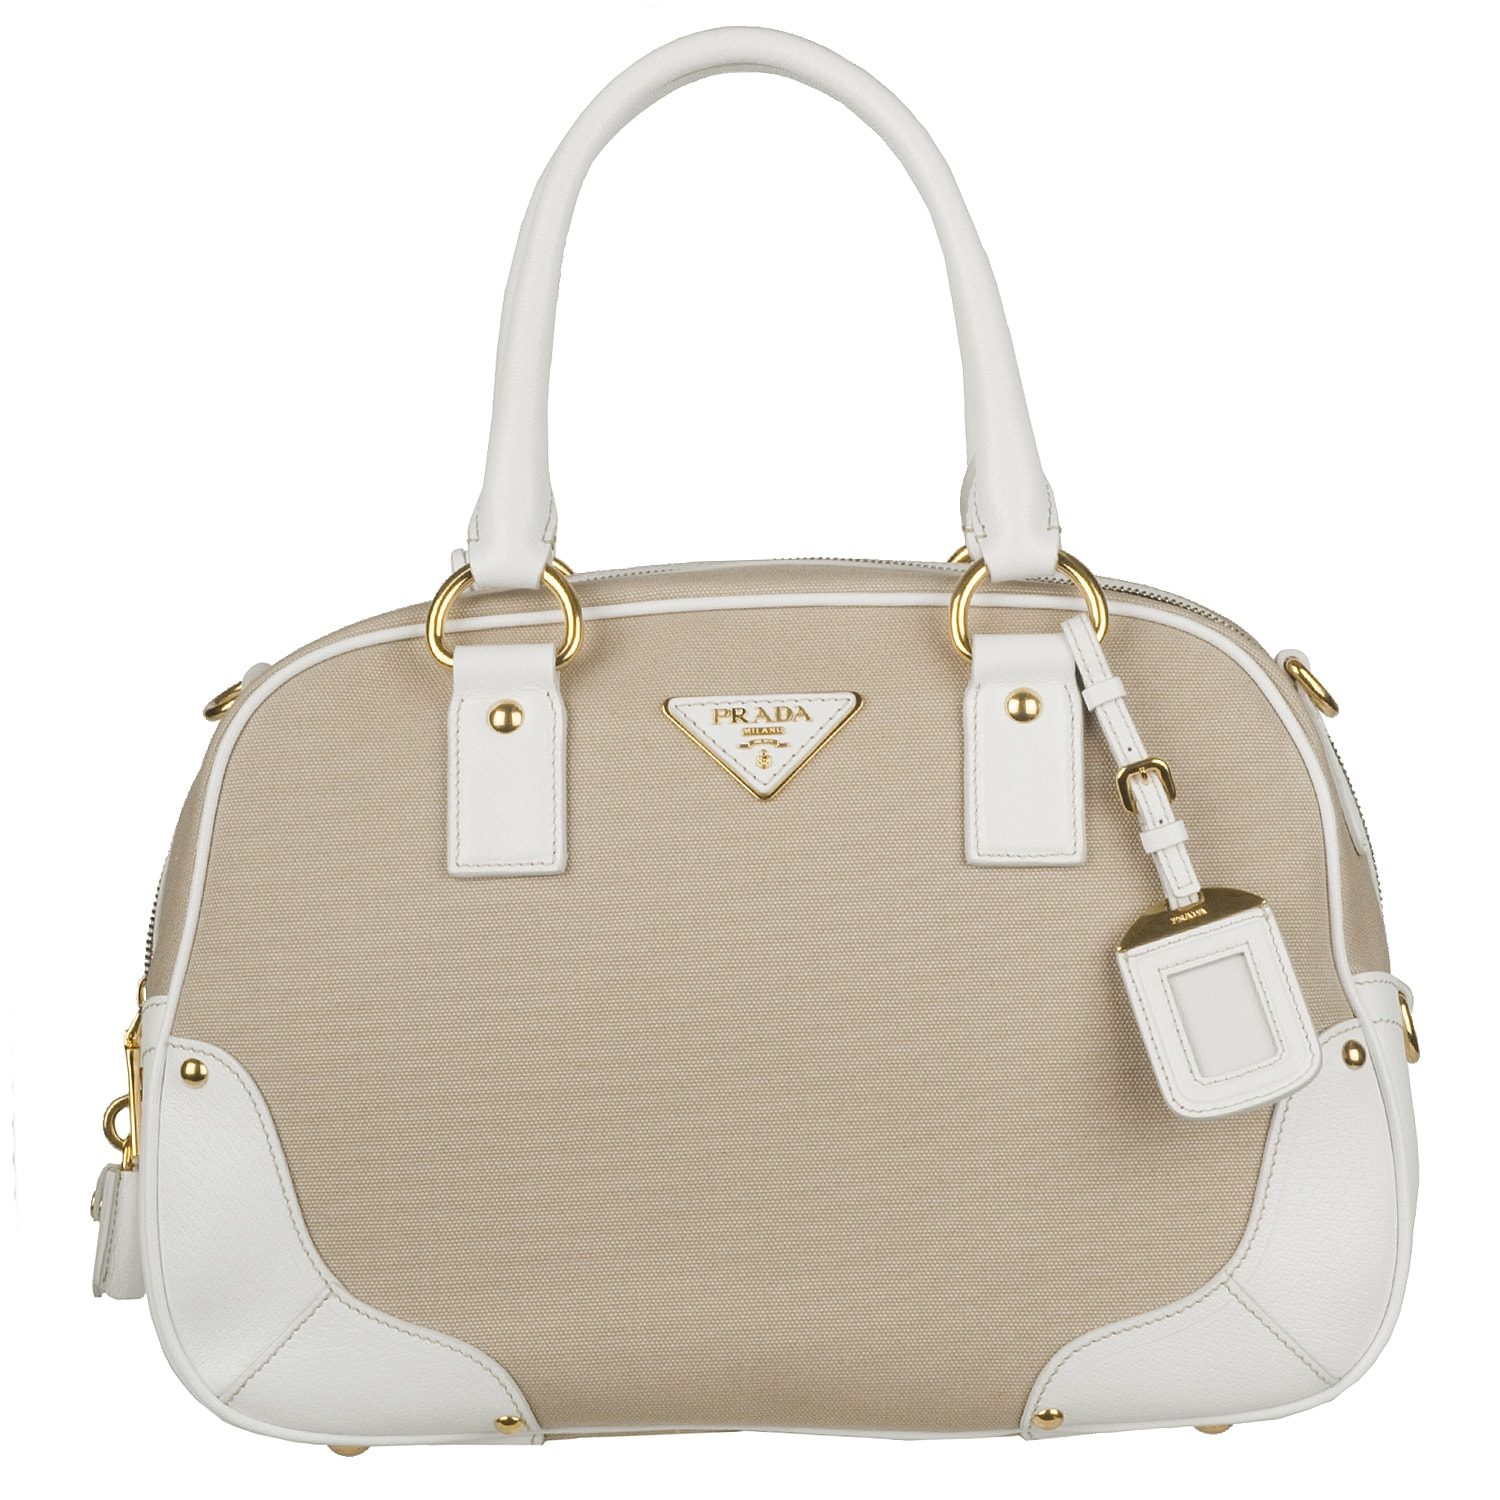 Prada Beige Canvas White Leather Trim Bowler Bag - 13767253 . d11bb6f1c41f2